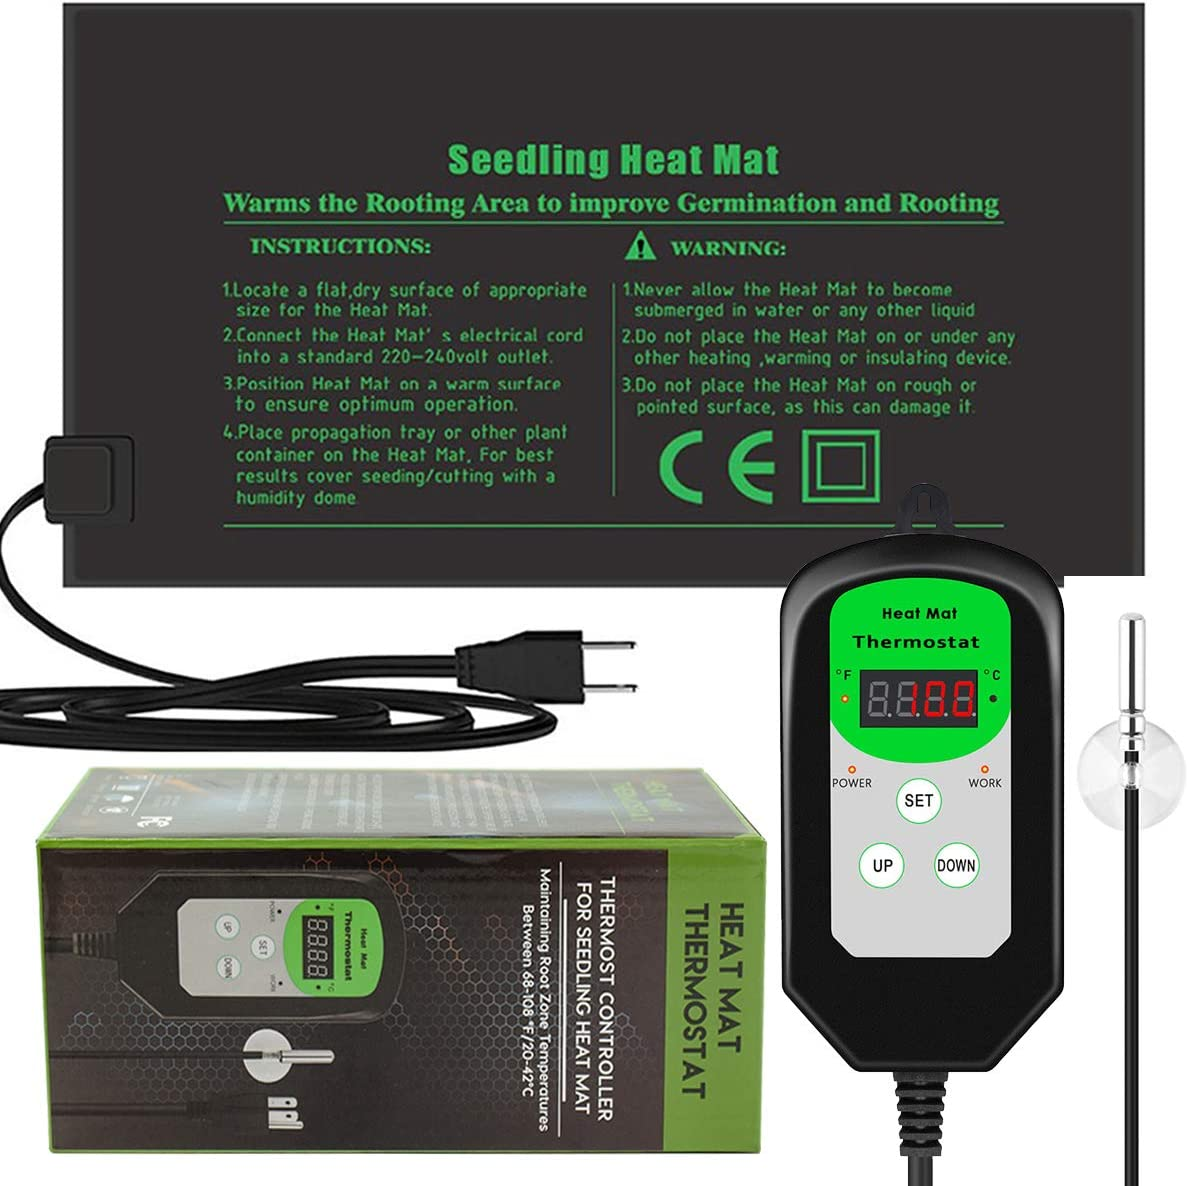 RIOGOO Seedling Heat Mat and Thermostat Controller